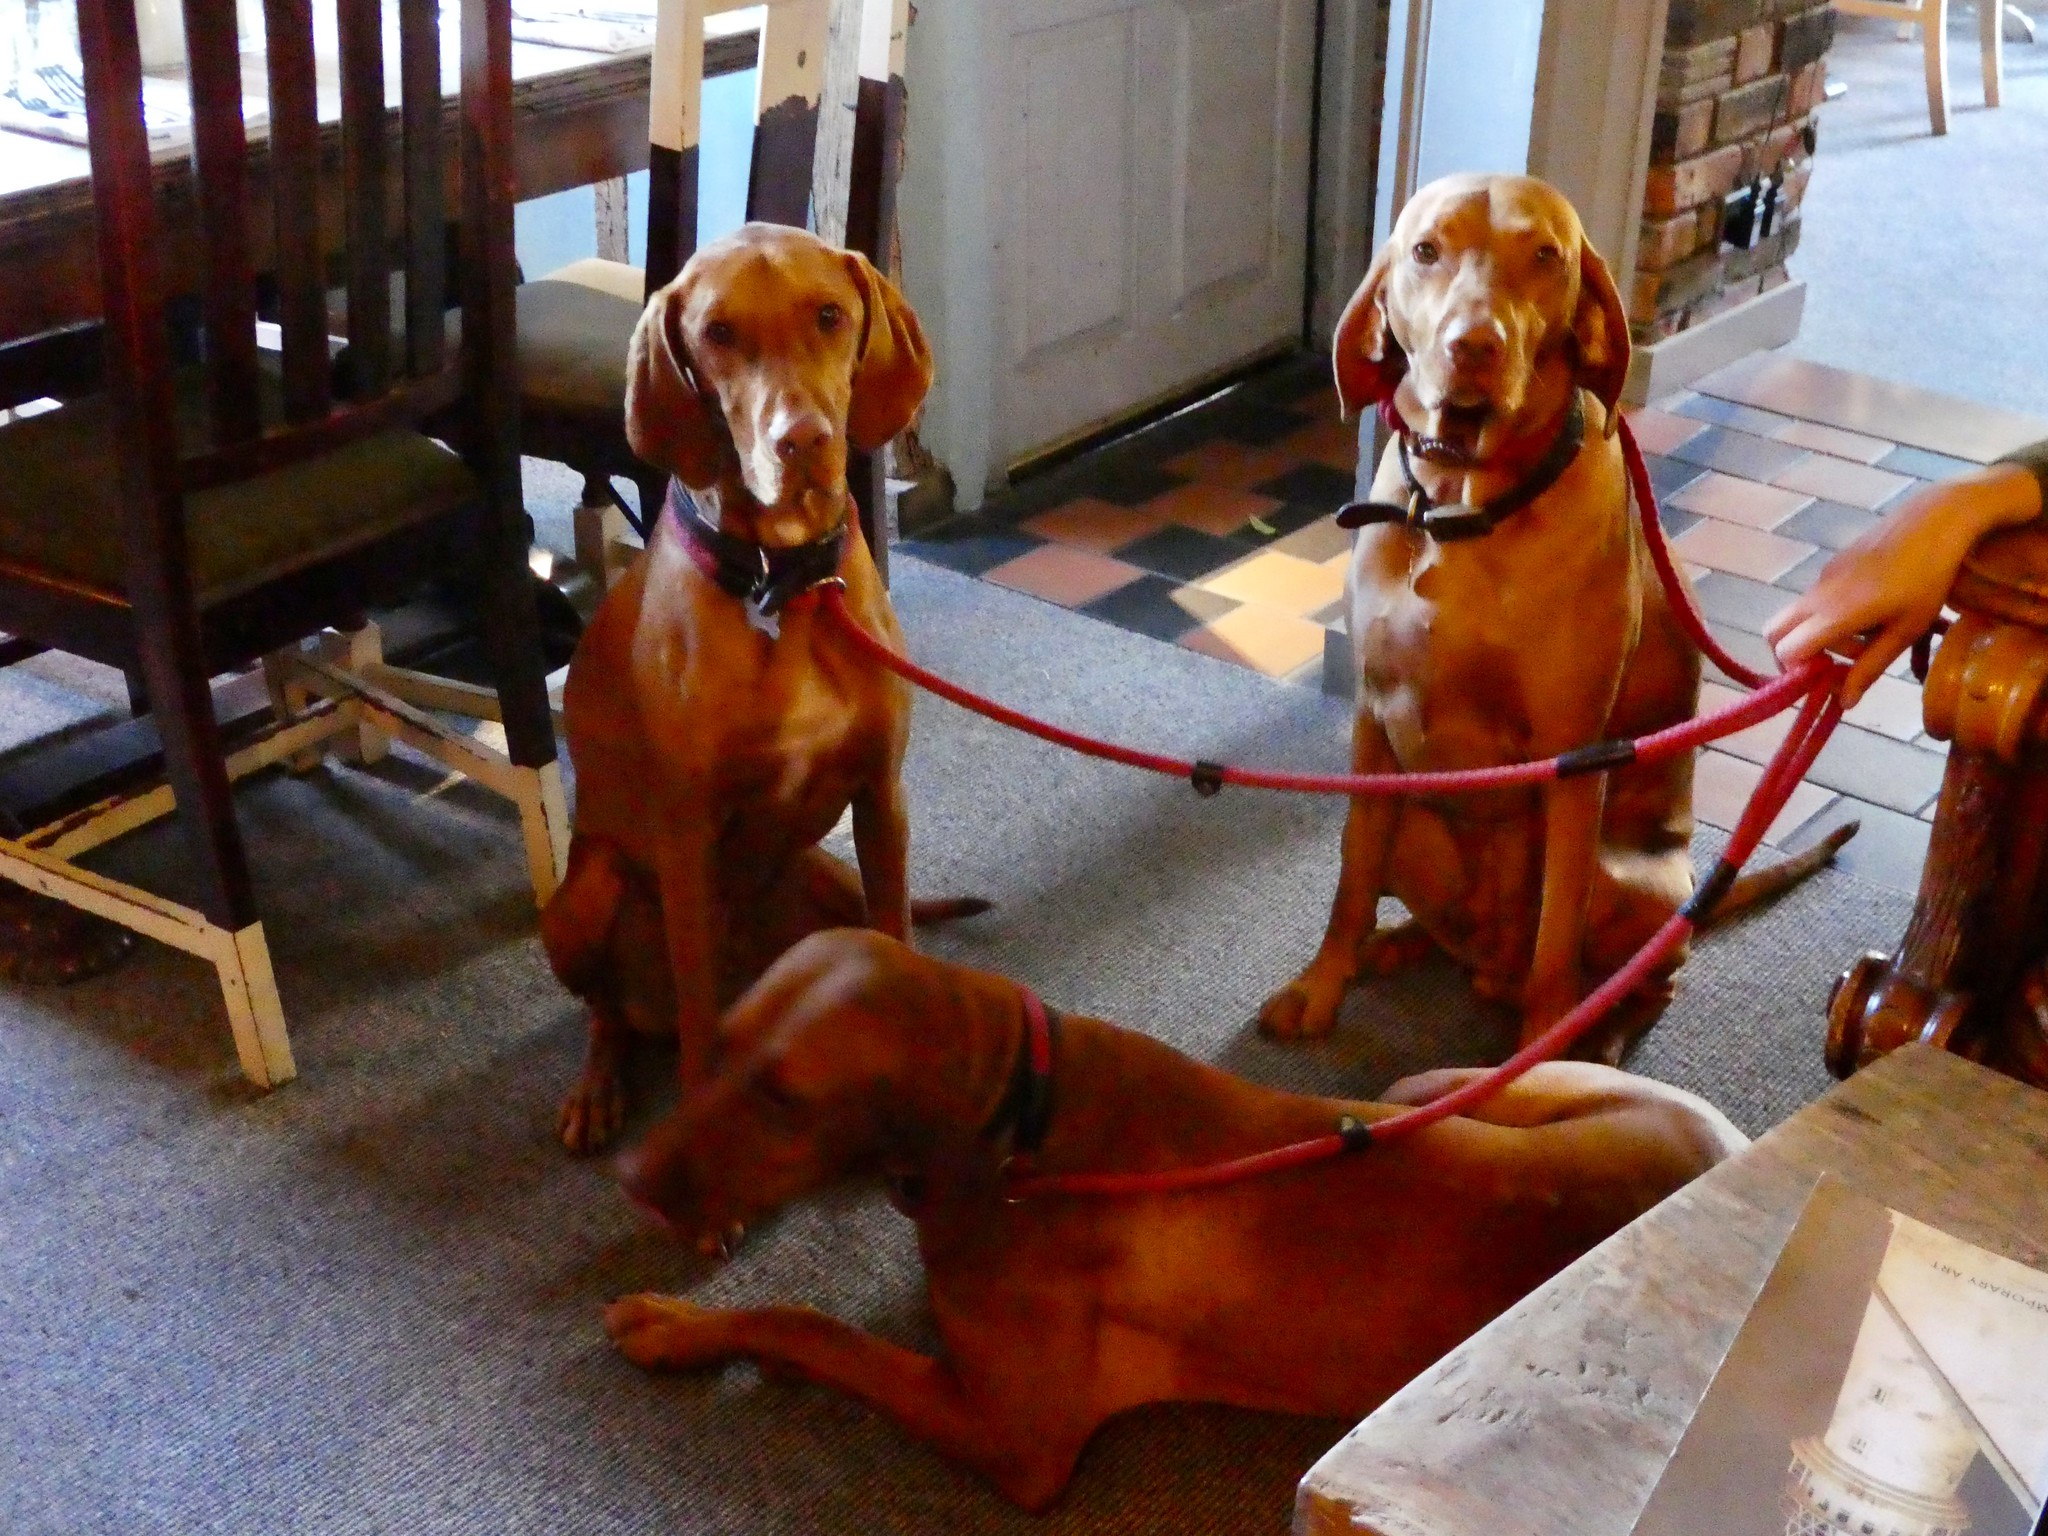 Dogs welcome at Pheasant Inn, Highclere